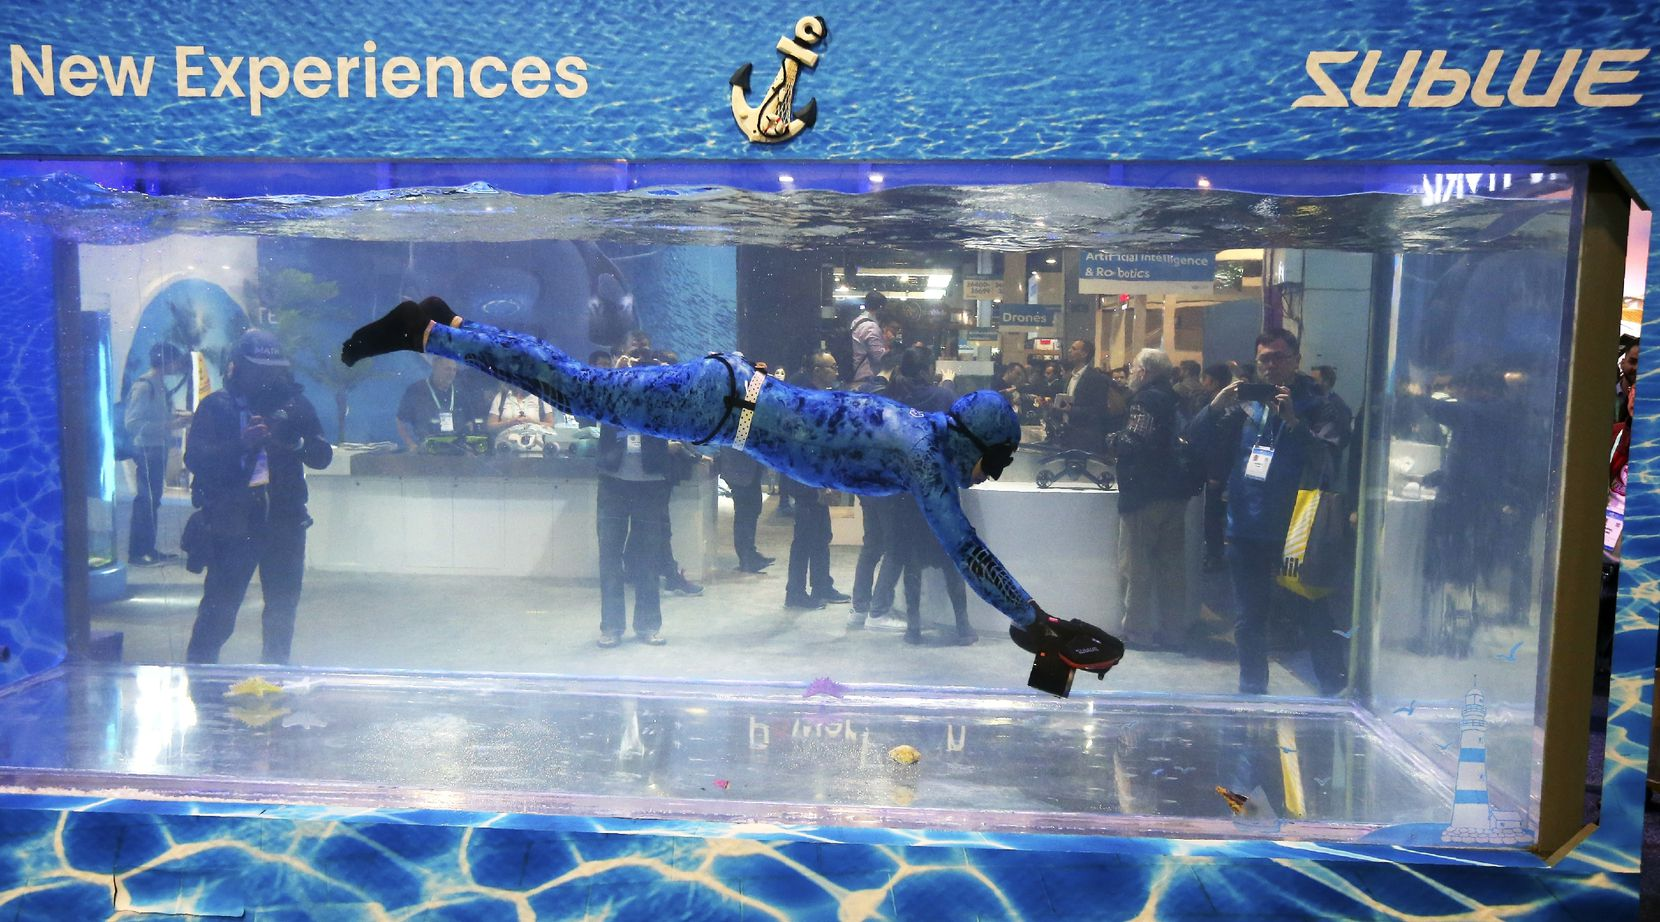 A Sublue diver moves around with the Sublue WhiteShark Mix outfitted with dual propellers for power and balance at a water tank booth during the CES tech show on Wednesday. (AP Photo/Ross D. Franklin)